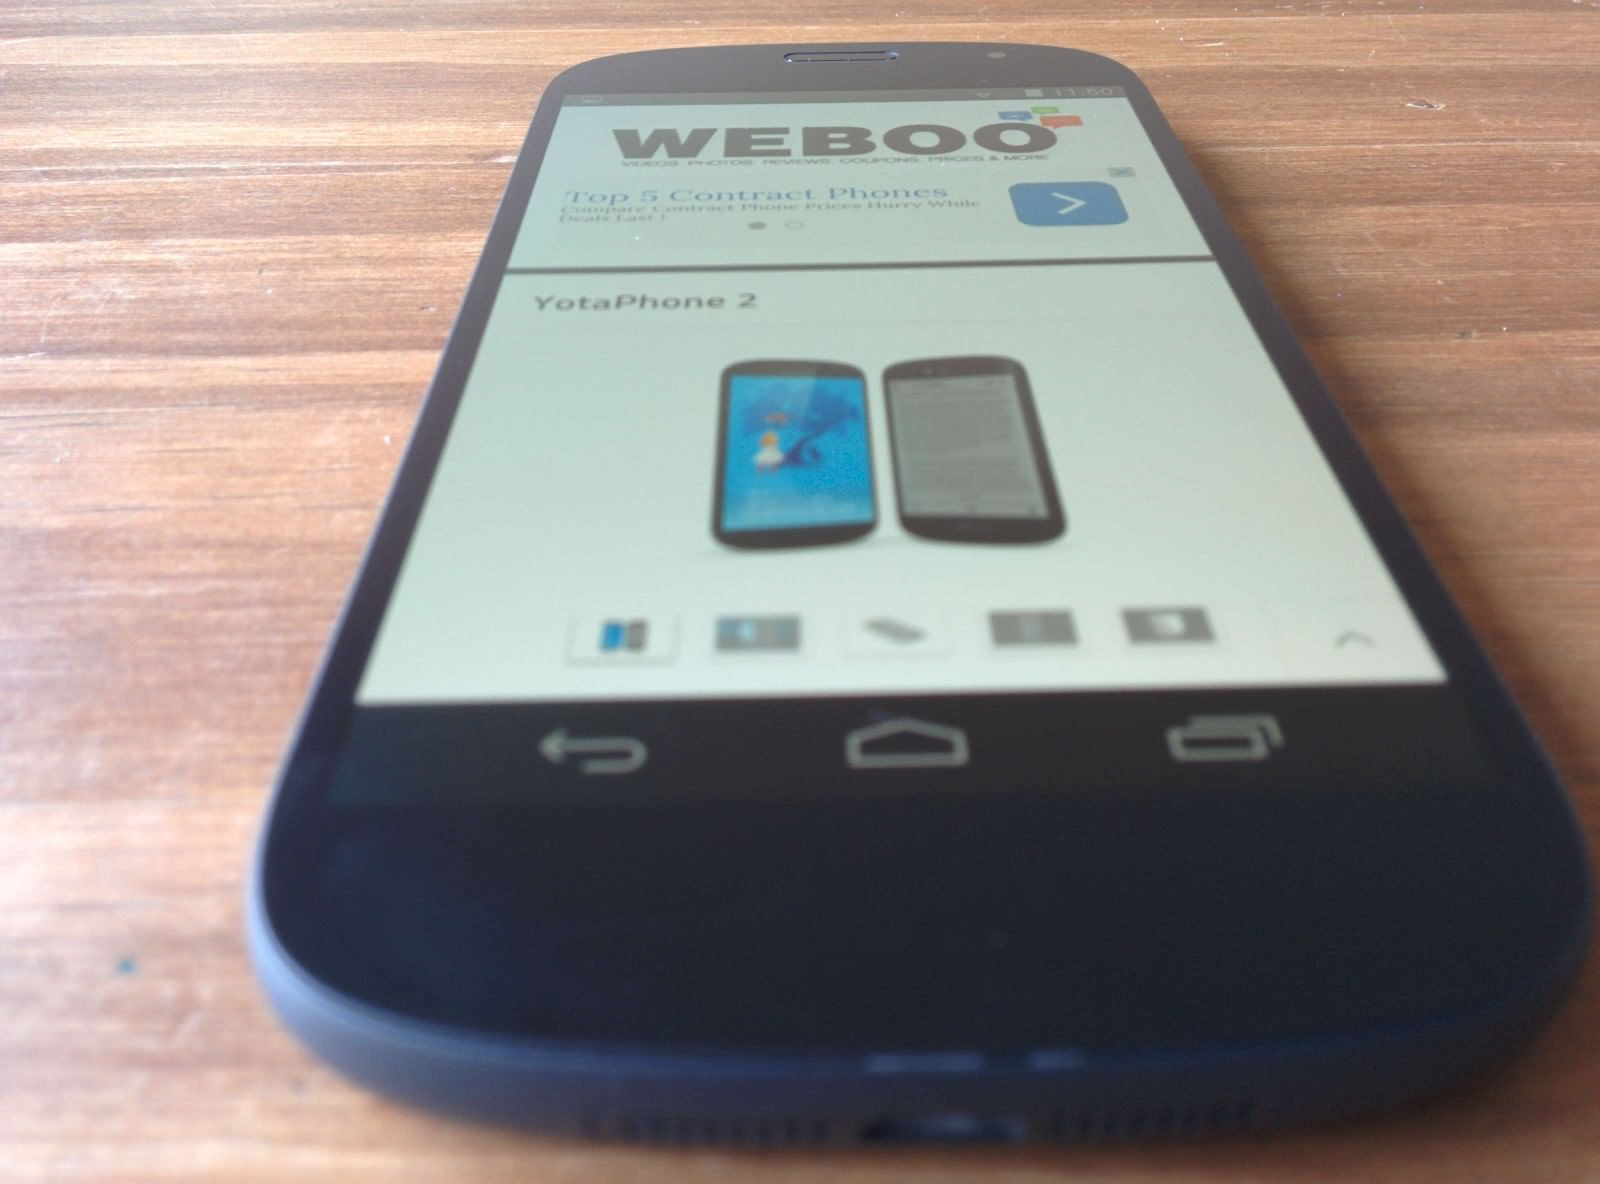 yotaphone-2-review-display-weboo-co-1